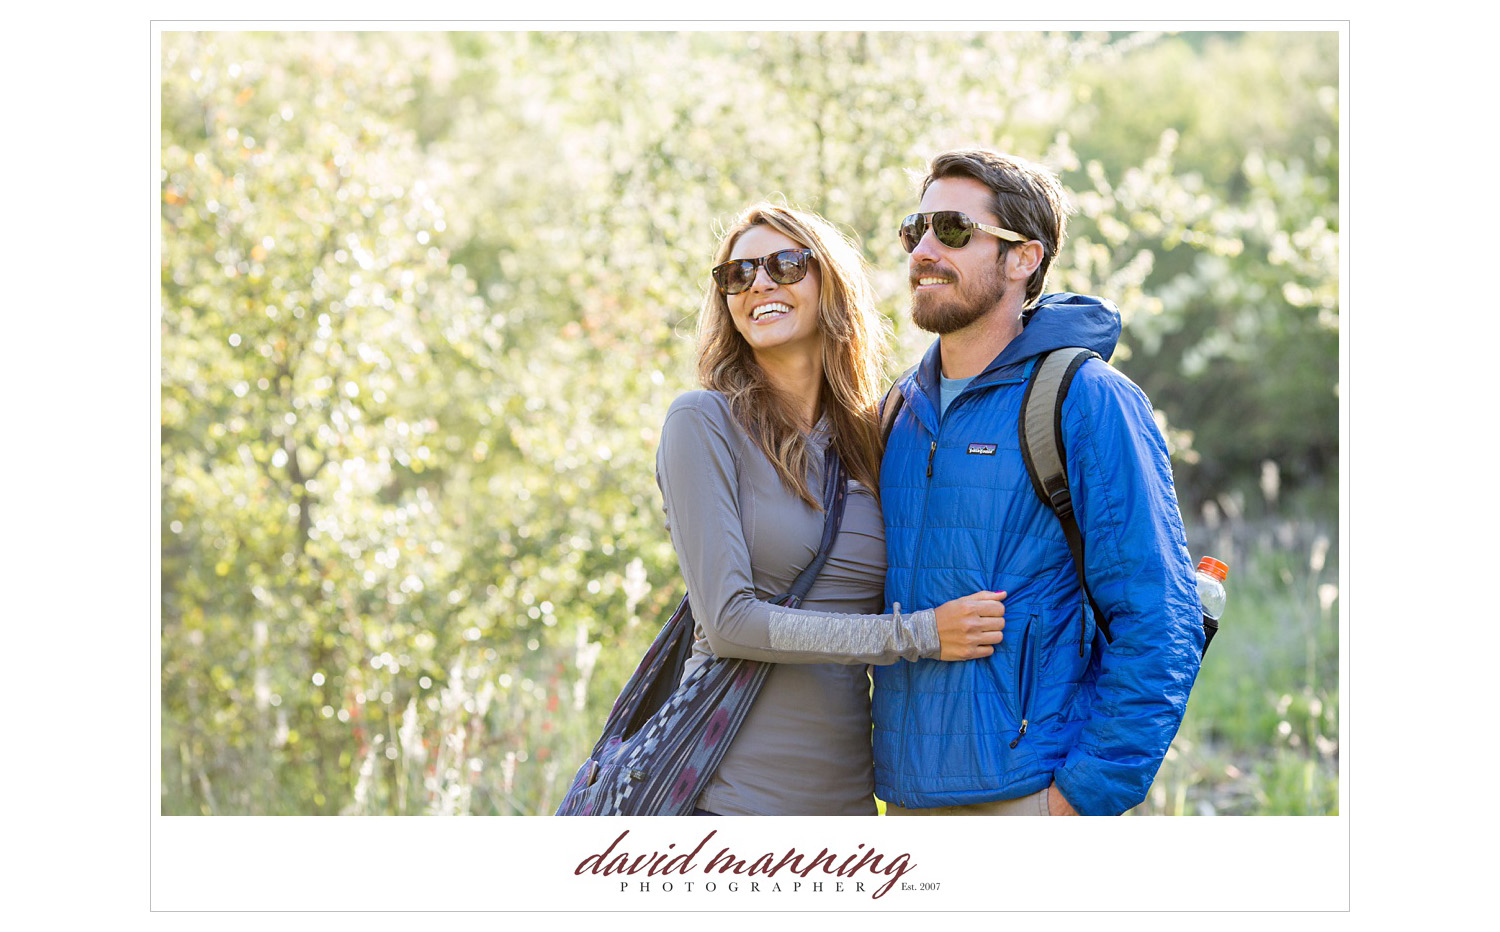 SOLO-Eyewear--Commercial-Editorial-Photos-David-Manning-Photographers-0022.jpg